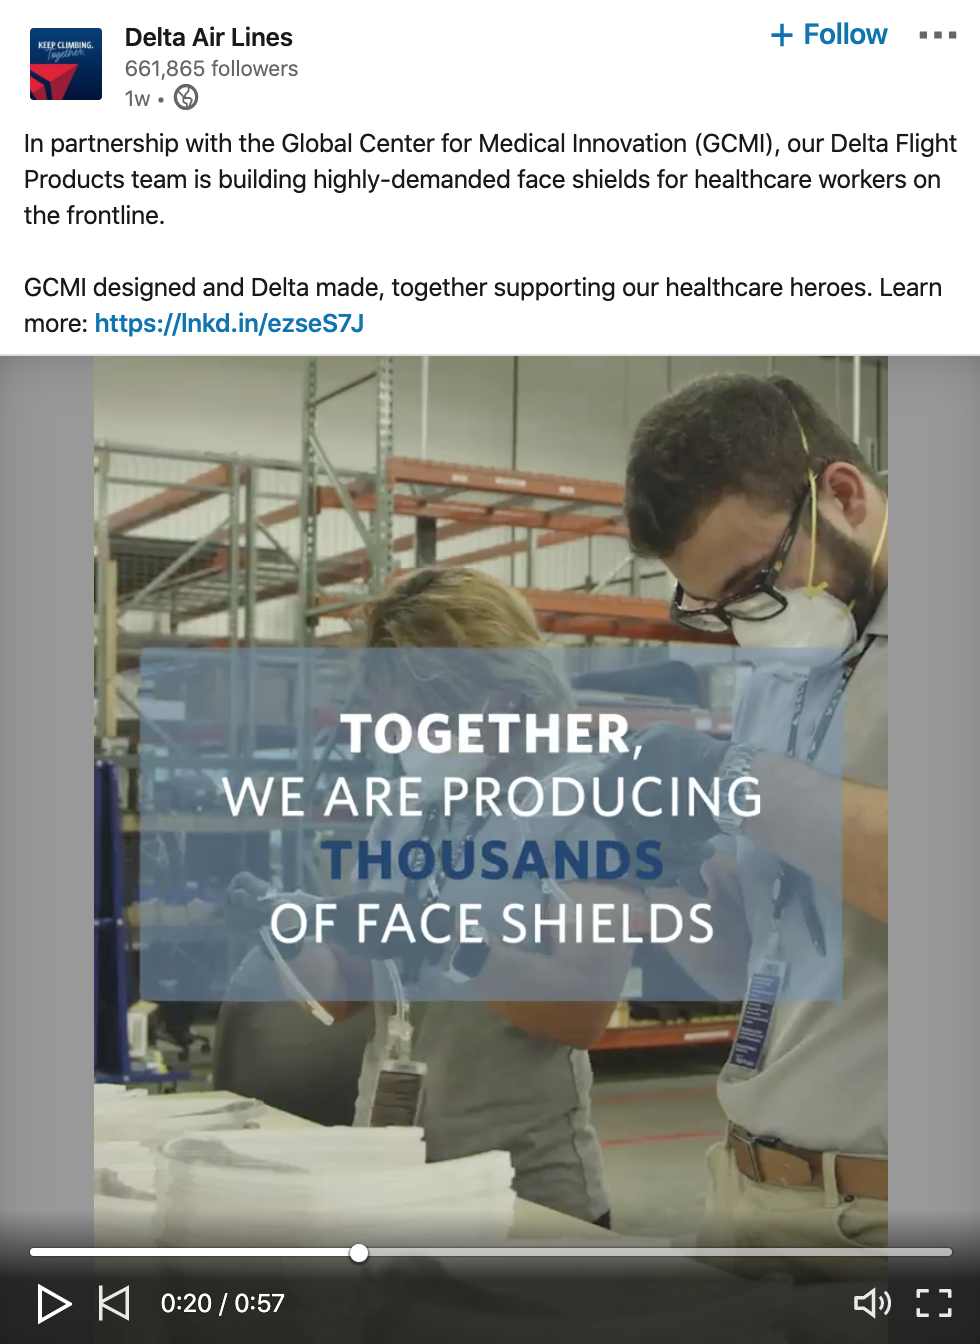 Screenshot of Delta Air Lines LinkedIn post:  In partnership with the Global Center for Medical Innovation (GCMI), our Delta Flight Products team is building highly-demanded face shields for healthcare workers on the frontline.  GCMI designed and Delta made, together supporting our healthcare heroes. Learn more: https://lnkd.in.ezseS7J